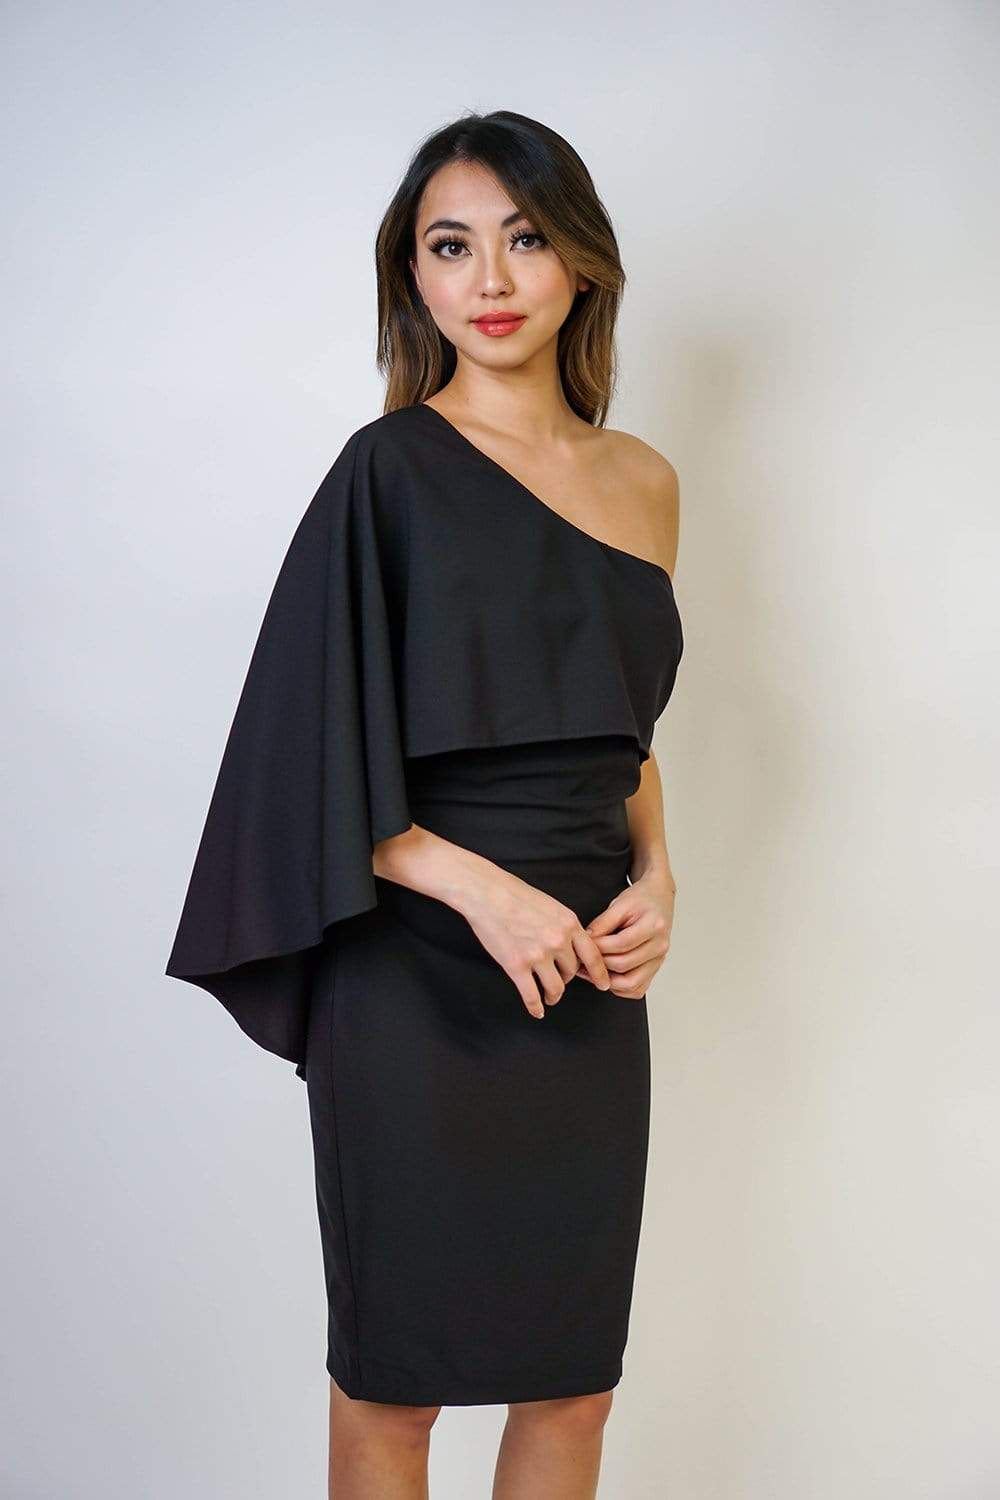 DRESS Dramatic One Shoulder Dress - Chloe Dao